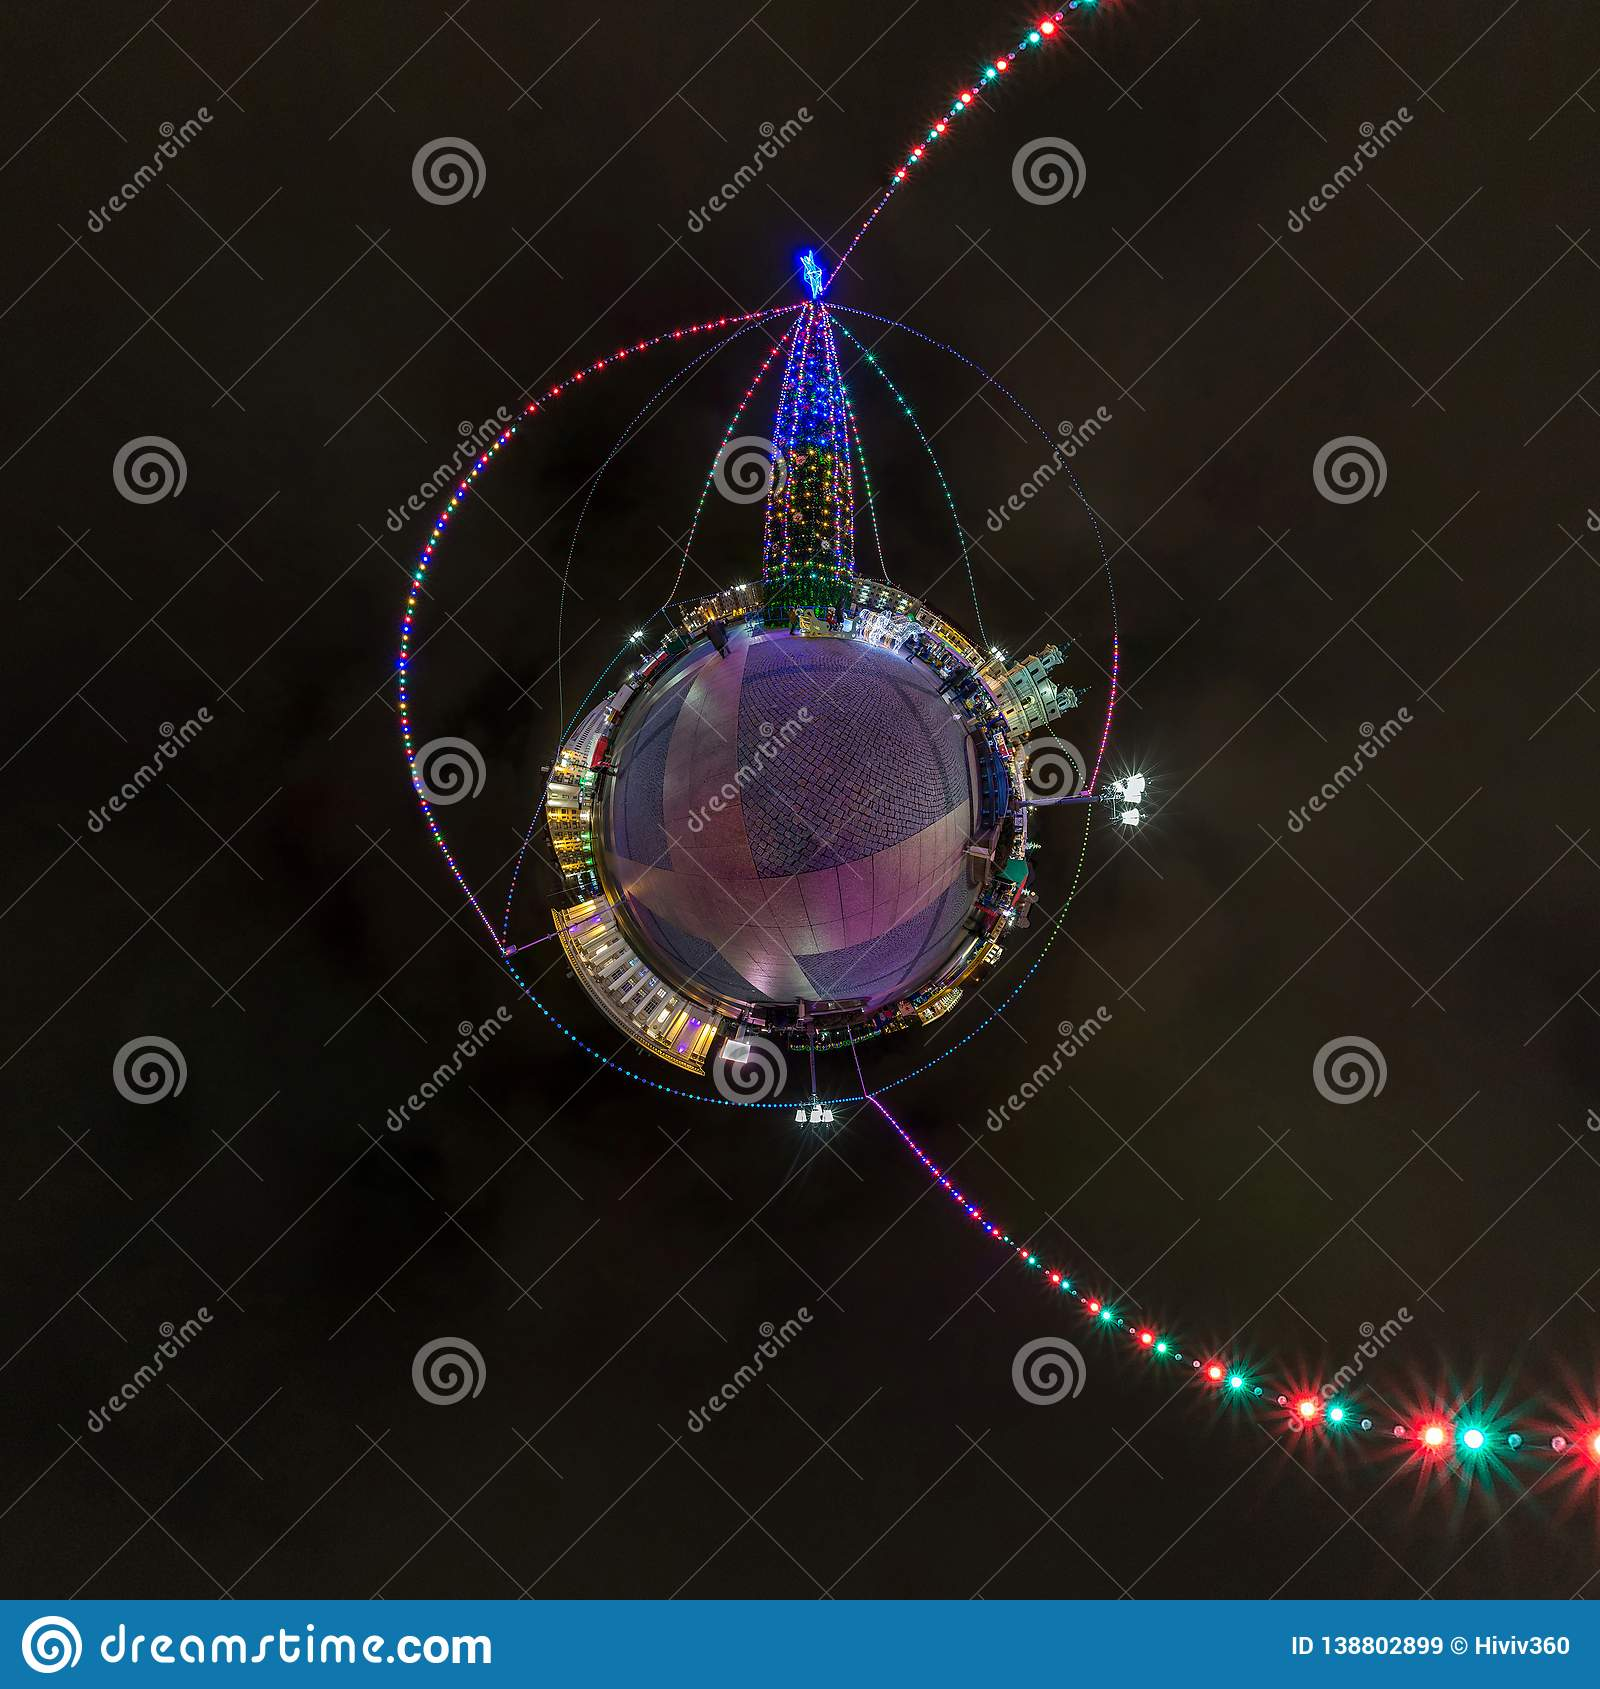 New year little planet. Spherical aerial 360 degree panorama night view on a festive square with a Christmas tree